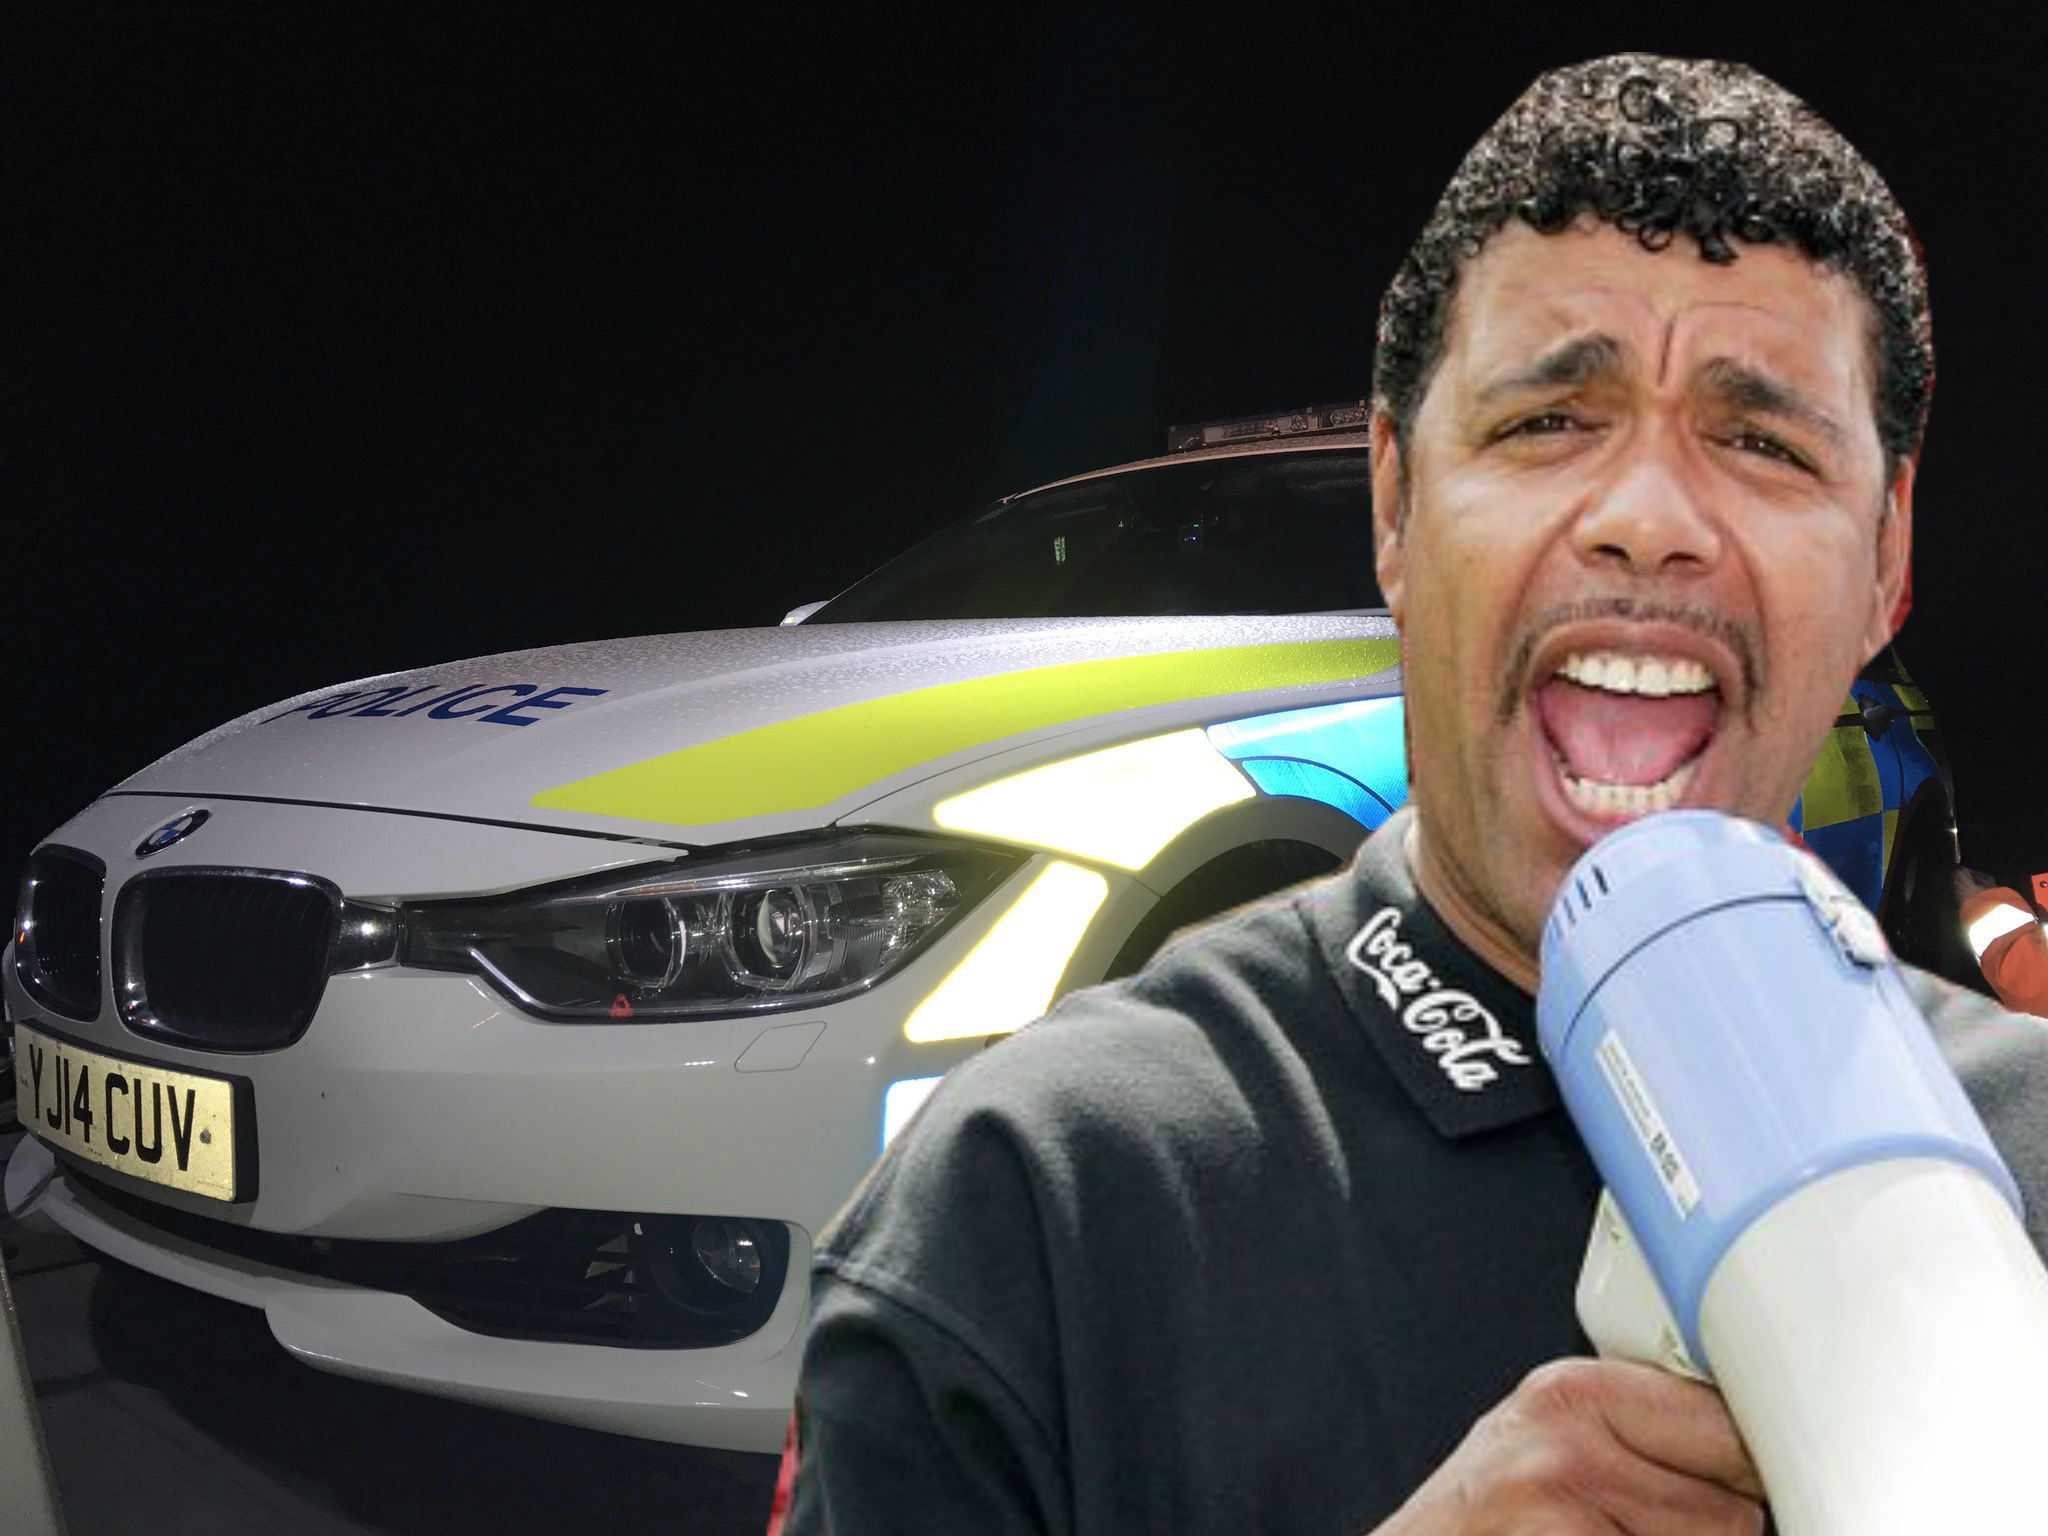 Chris Kamara gave a shout-out to the police